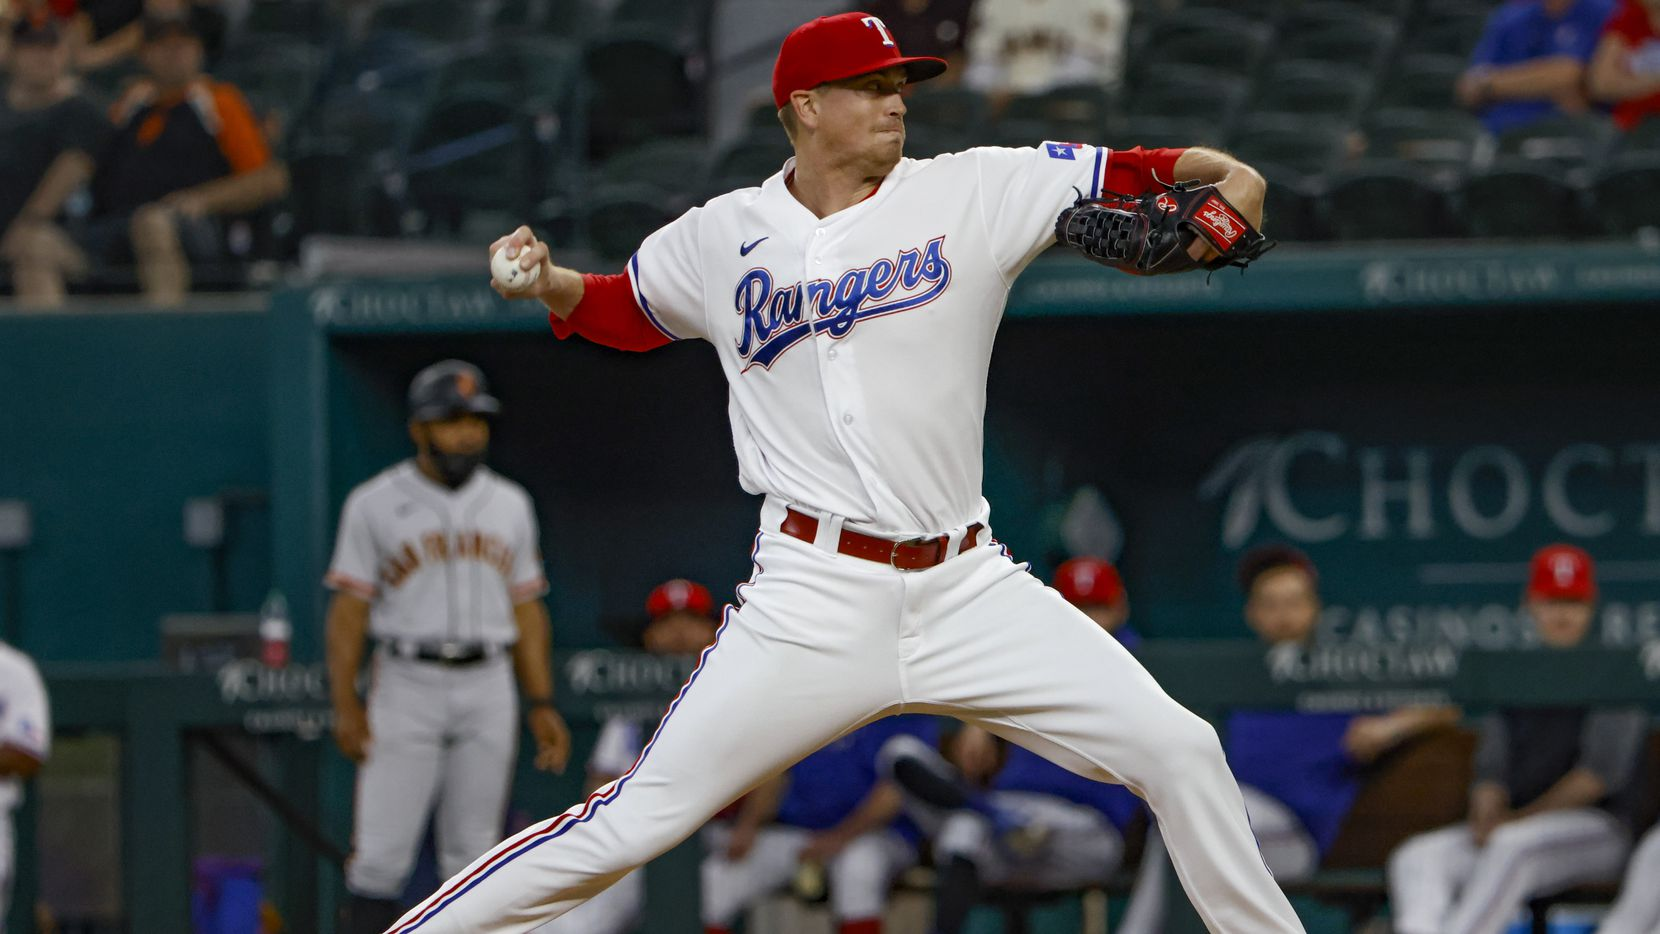 Texas Rangers starting pitcher Kyle Gibson (44) pitches during the first inning at Globe Life Field in Arlington, Texas, in Dallas on Wednesday, June 9, 2021. (Lynda M. González/The Dallas Morning News)